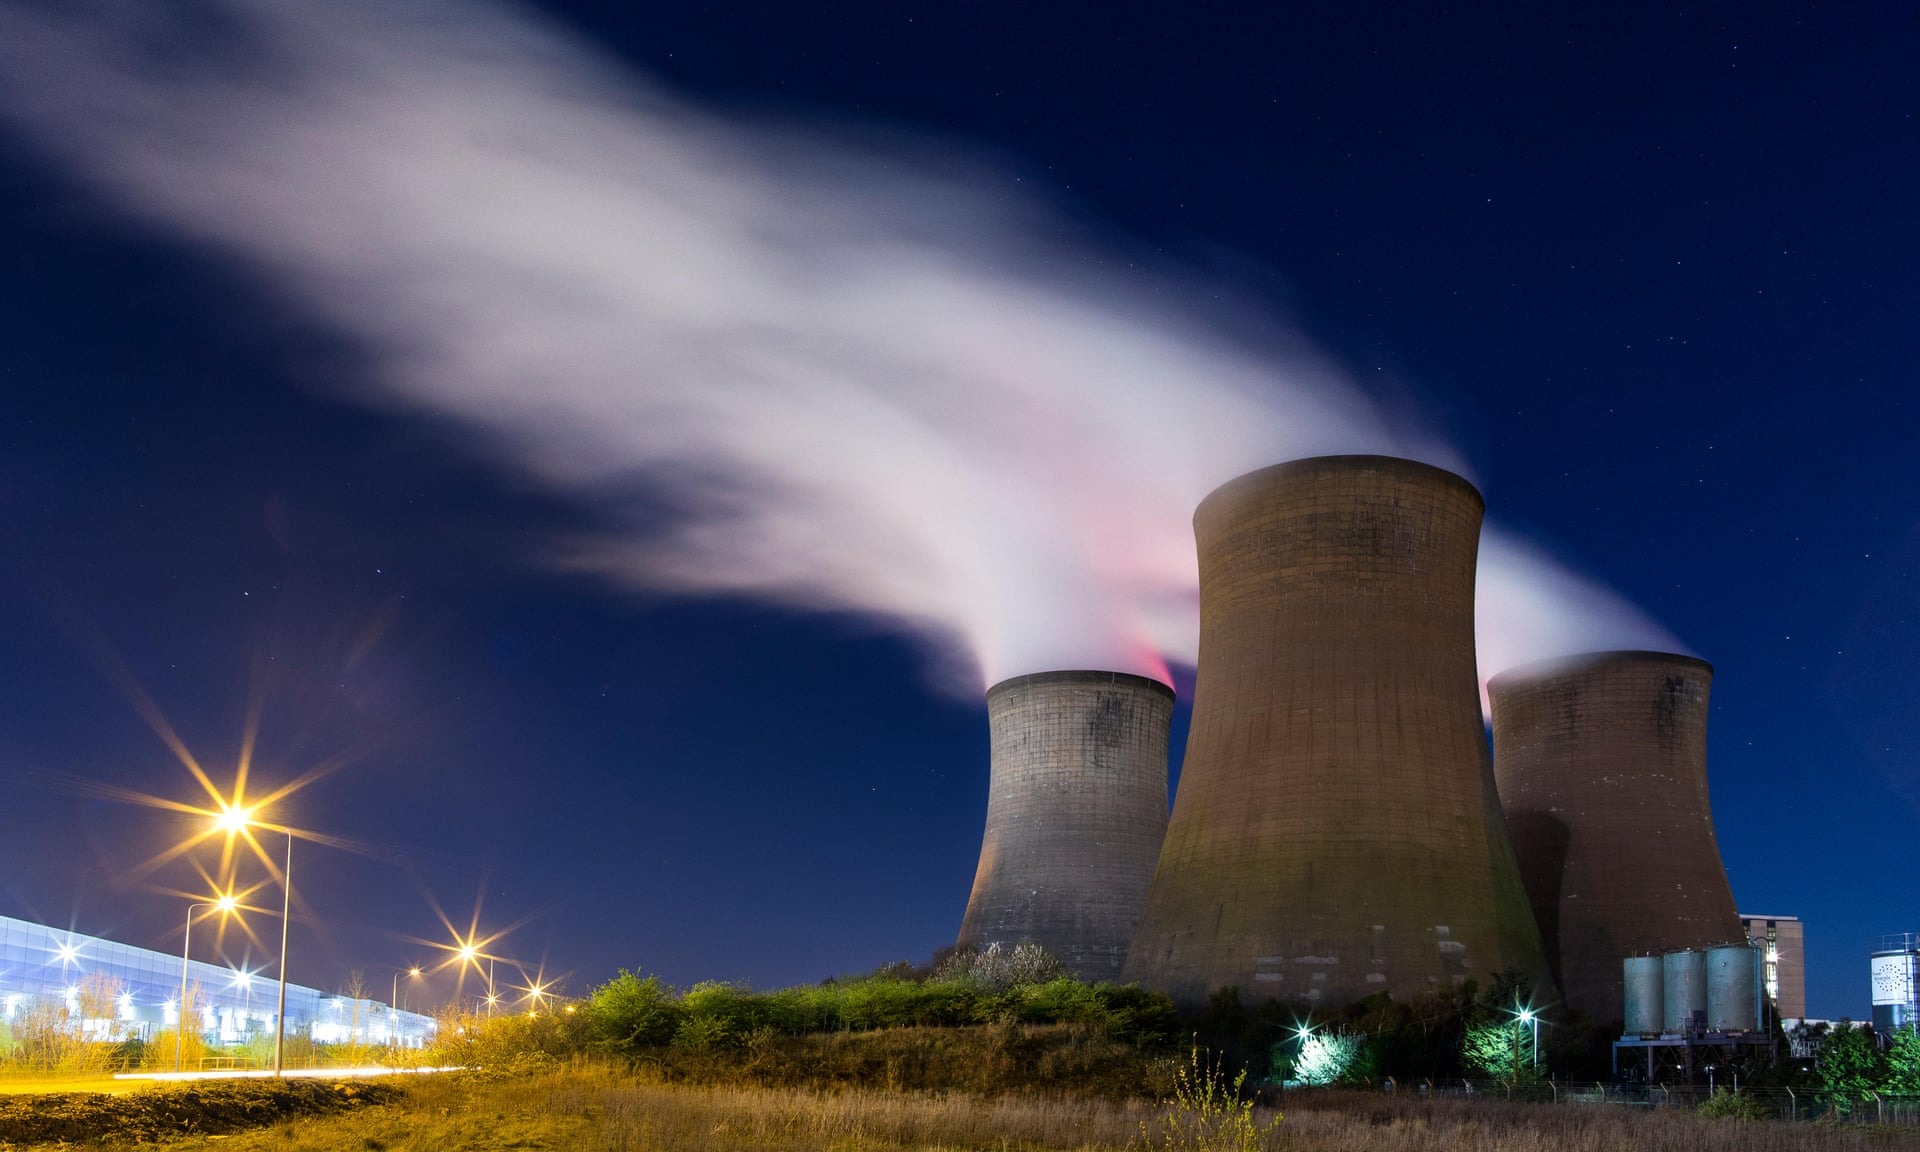 Britain has gone a week without using coal to generate electricity for the first time since 1882